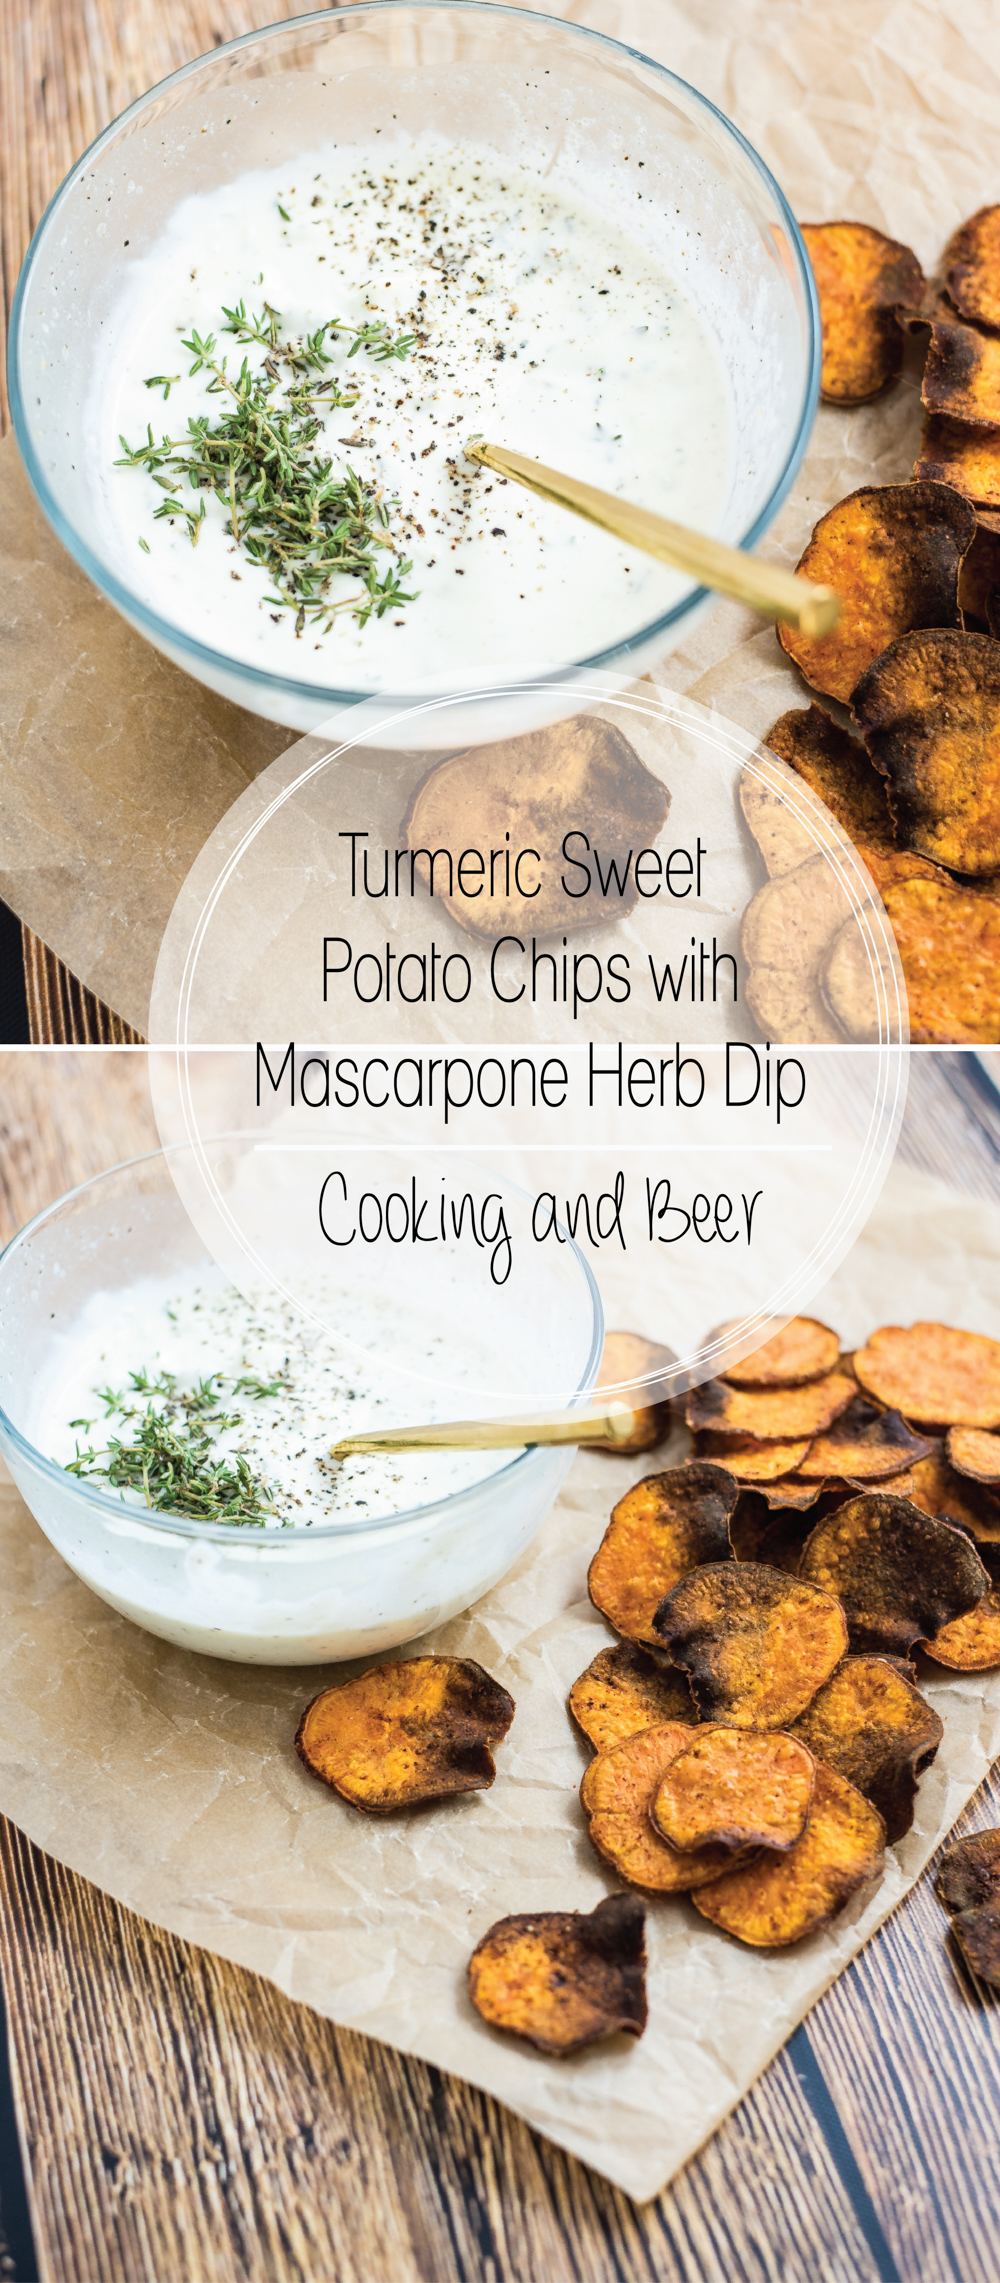 Turmeric sweet potato chips with mascarpone dip is a healthier appetizer recipe where the chips are baked and not fried, and the dip is loaded with herbs!